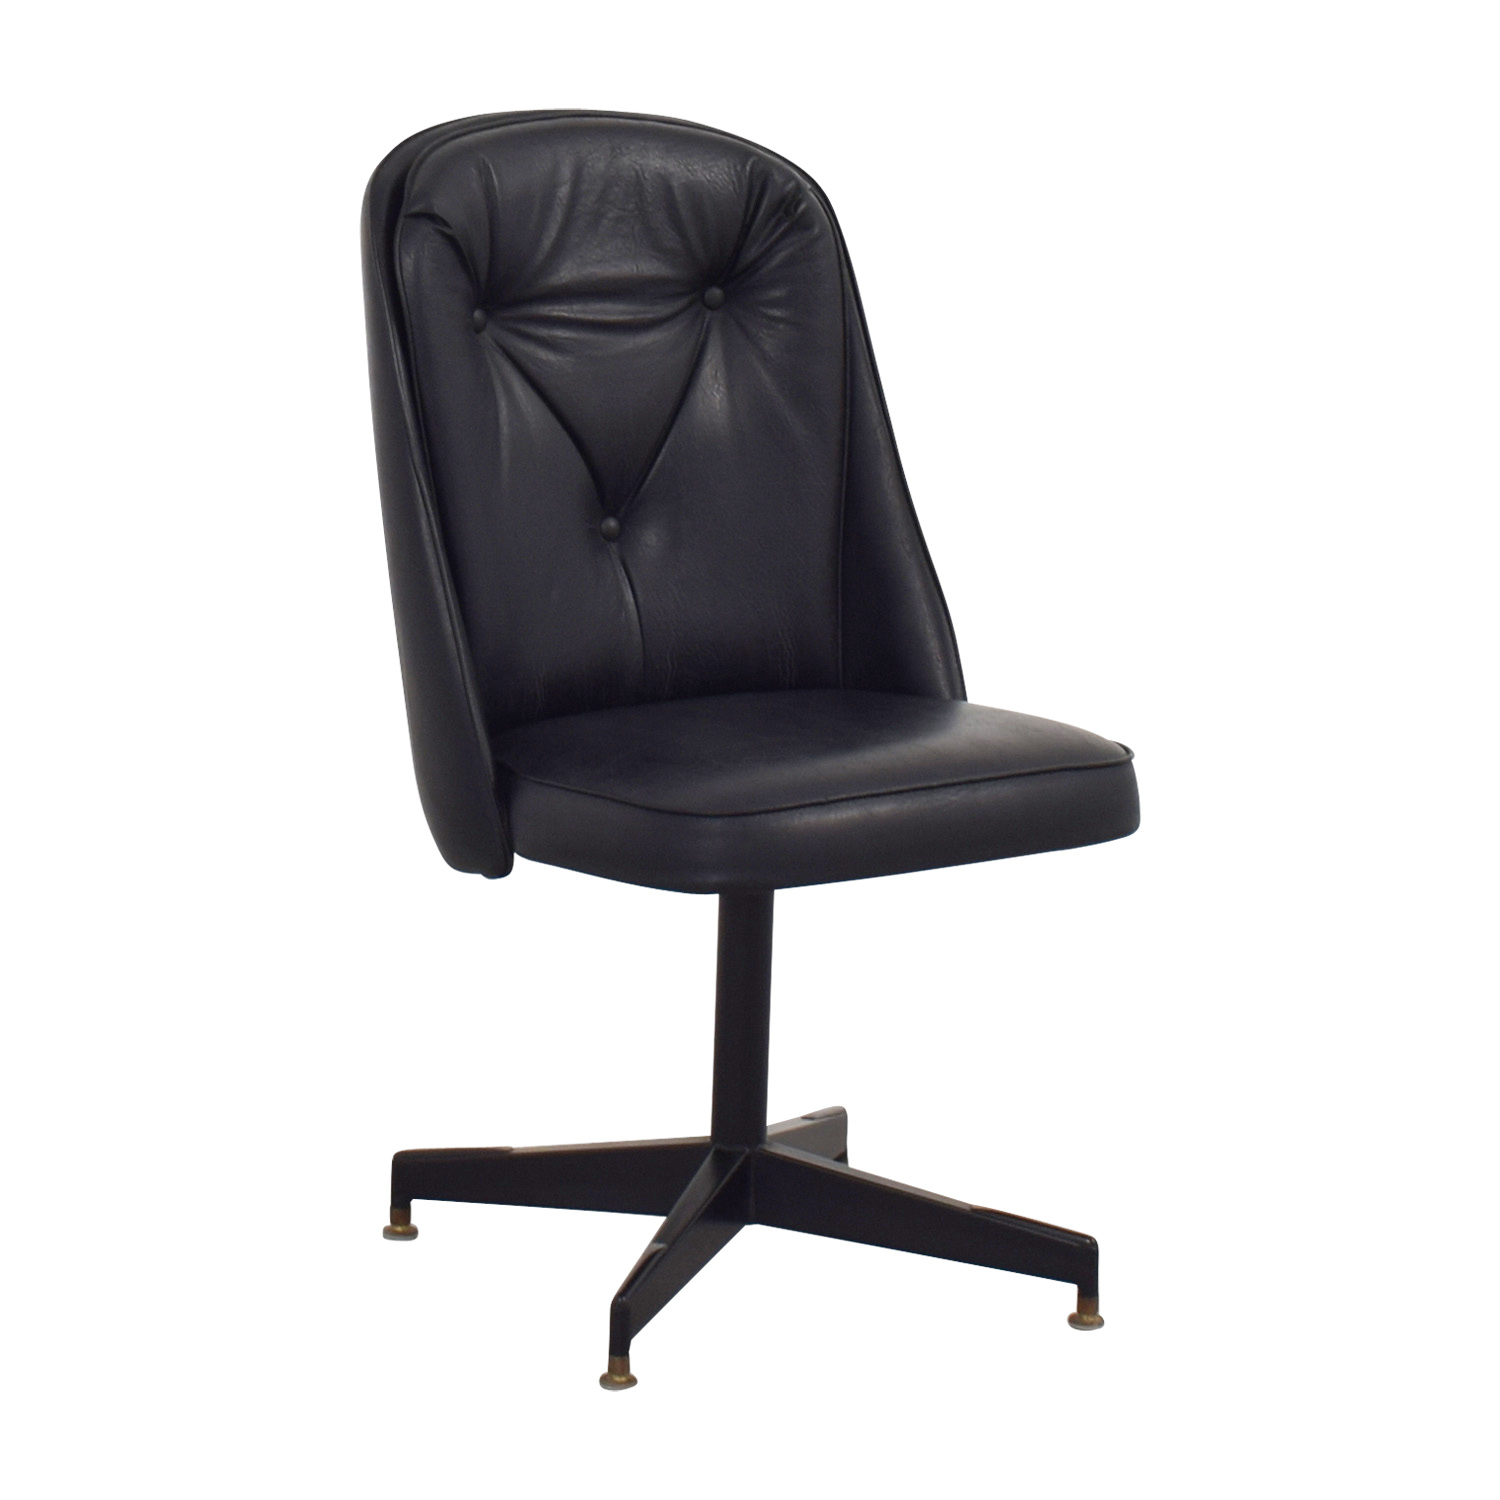 Black Swivel Chair 62 Off Black Leather Swivel Office Desk Chair Chairs